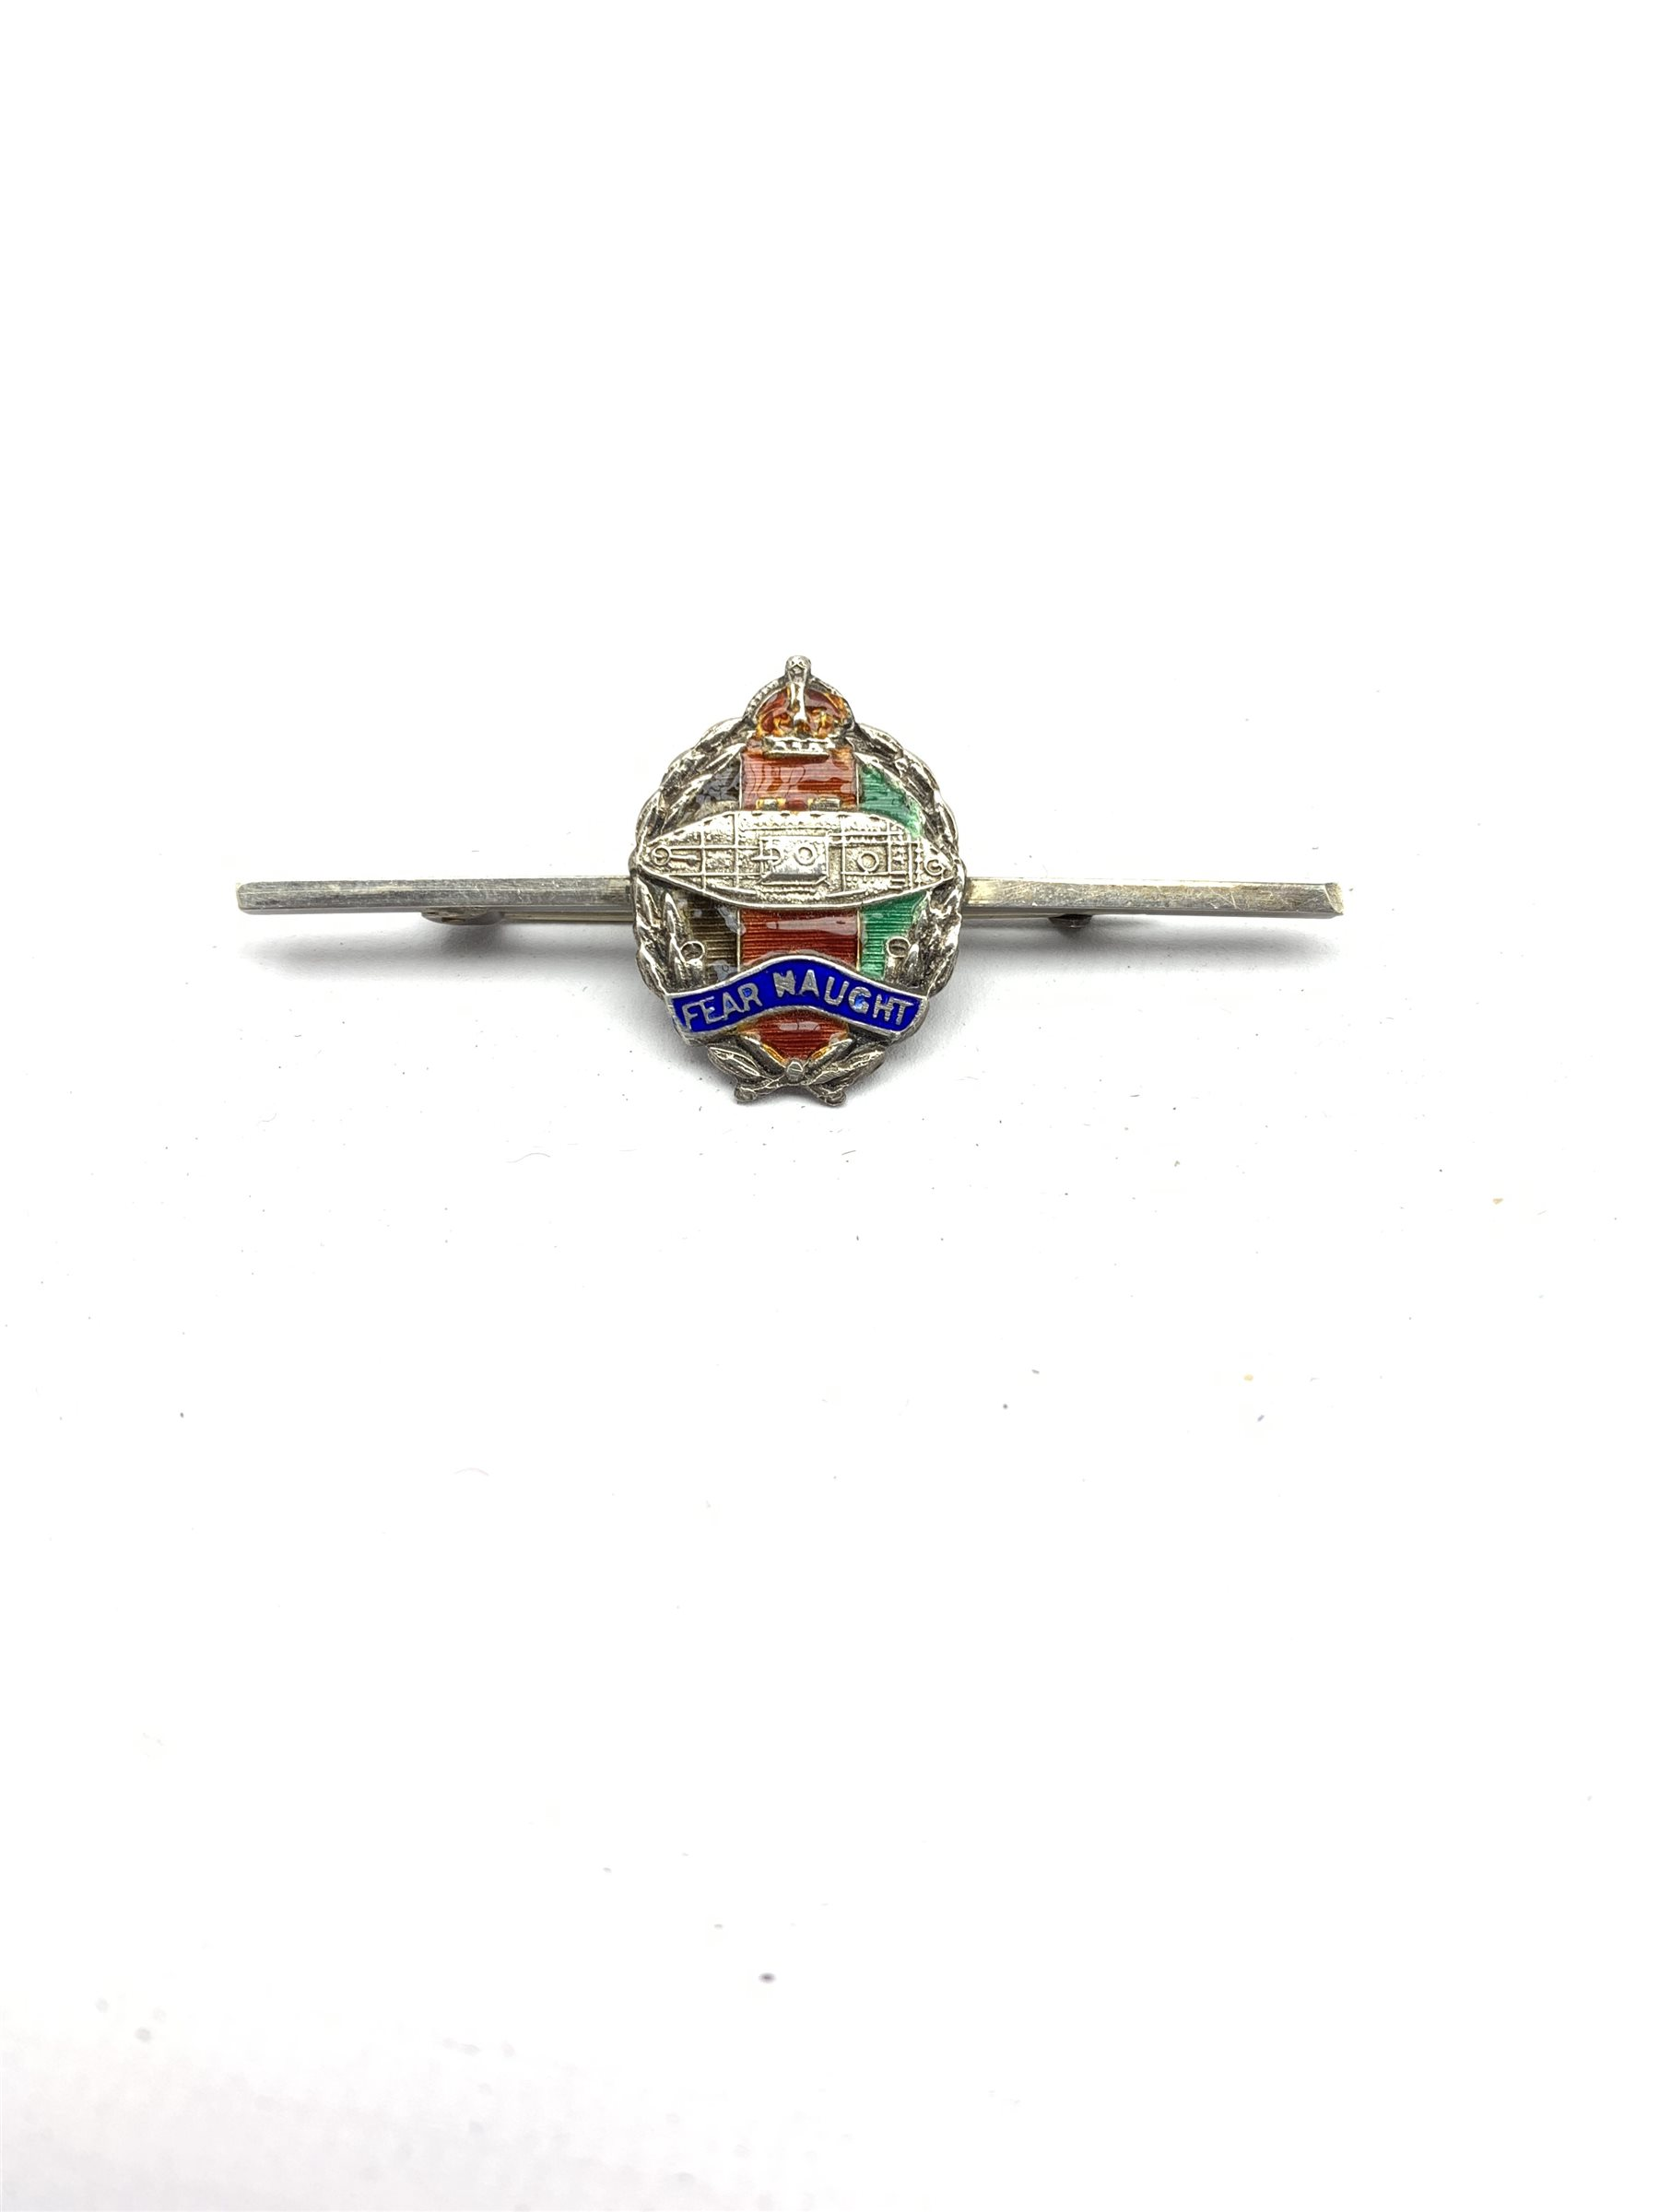 9ct gold and blue enamel brooch for XIII-XVIII Royal Hussars , four other Hussars brooches and clips - Image 4 of 15